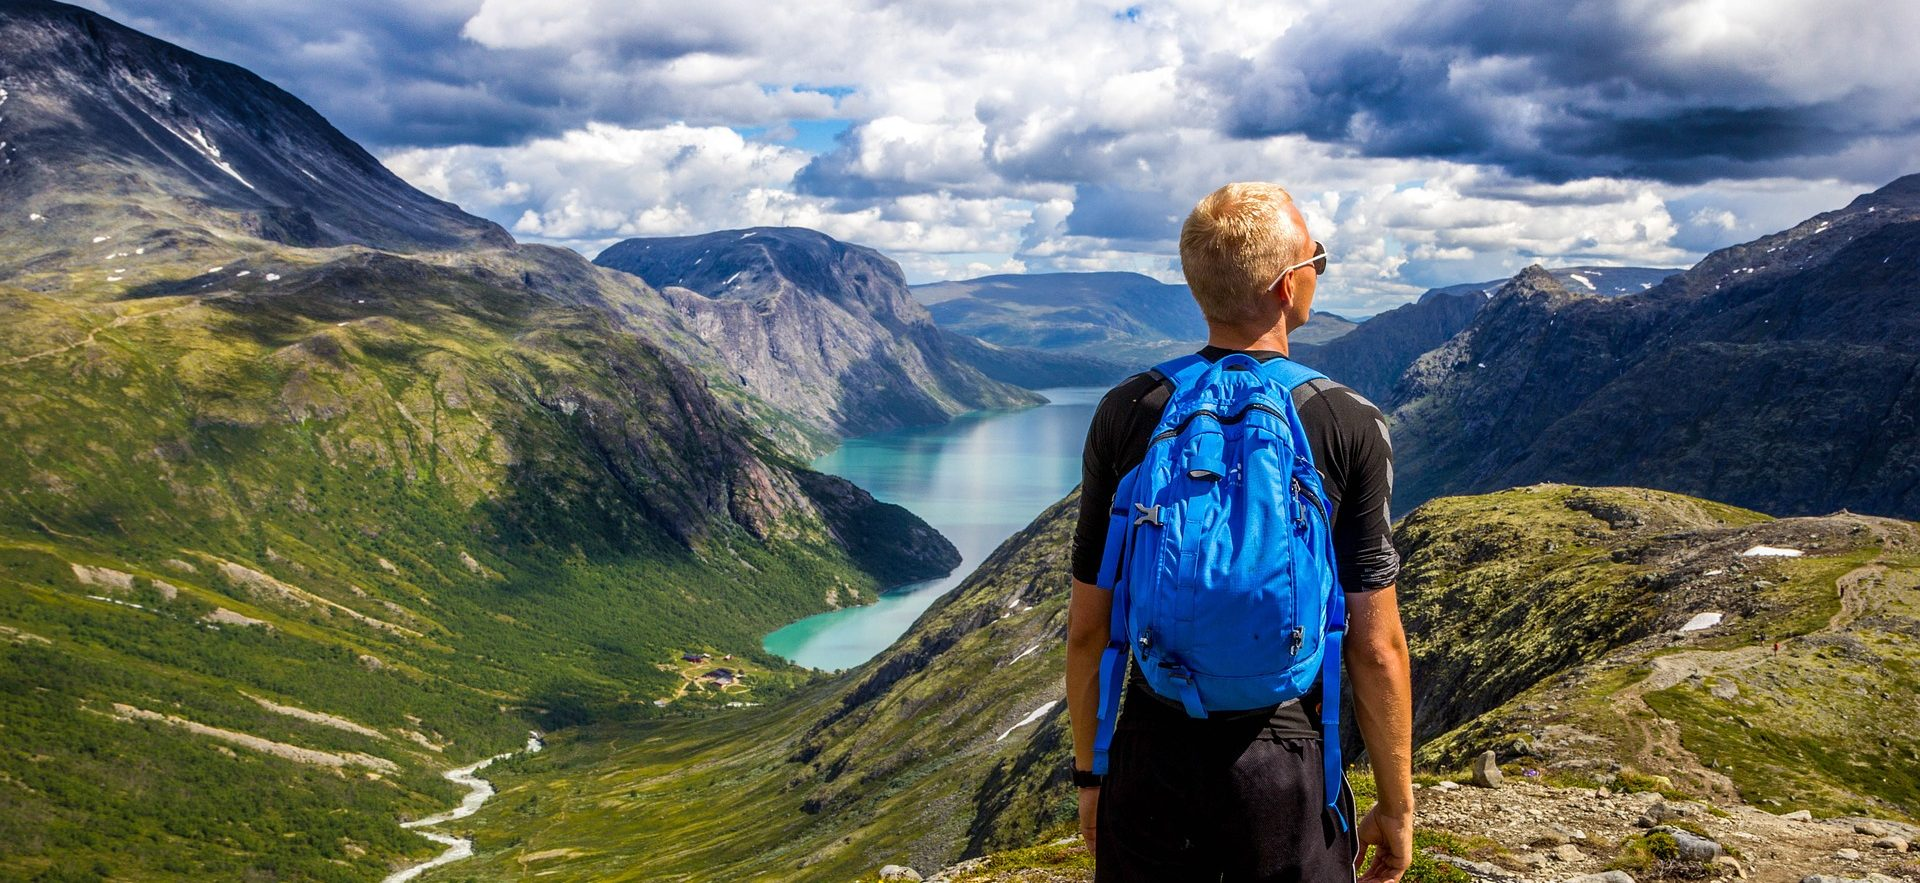 Spend the summer navigating peaks and valleys while you dive into your work. Uncover some of the hidden gems of Eastern Europe with this list!